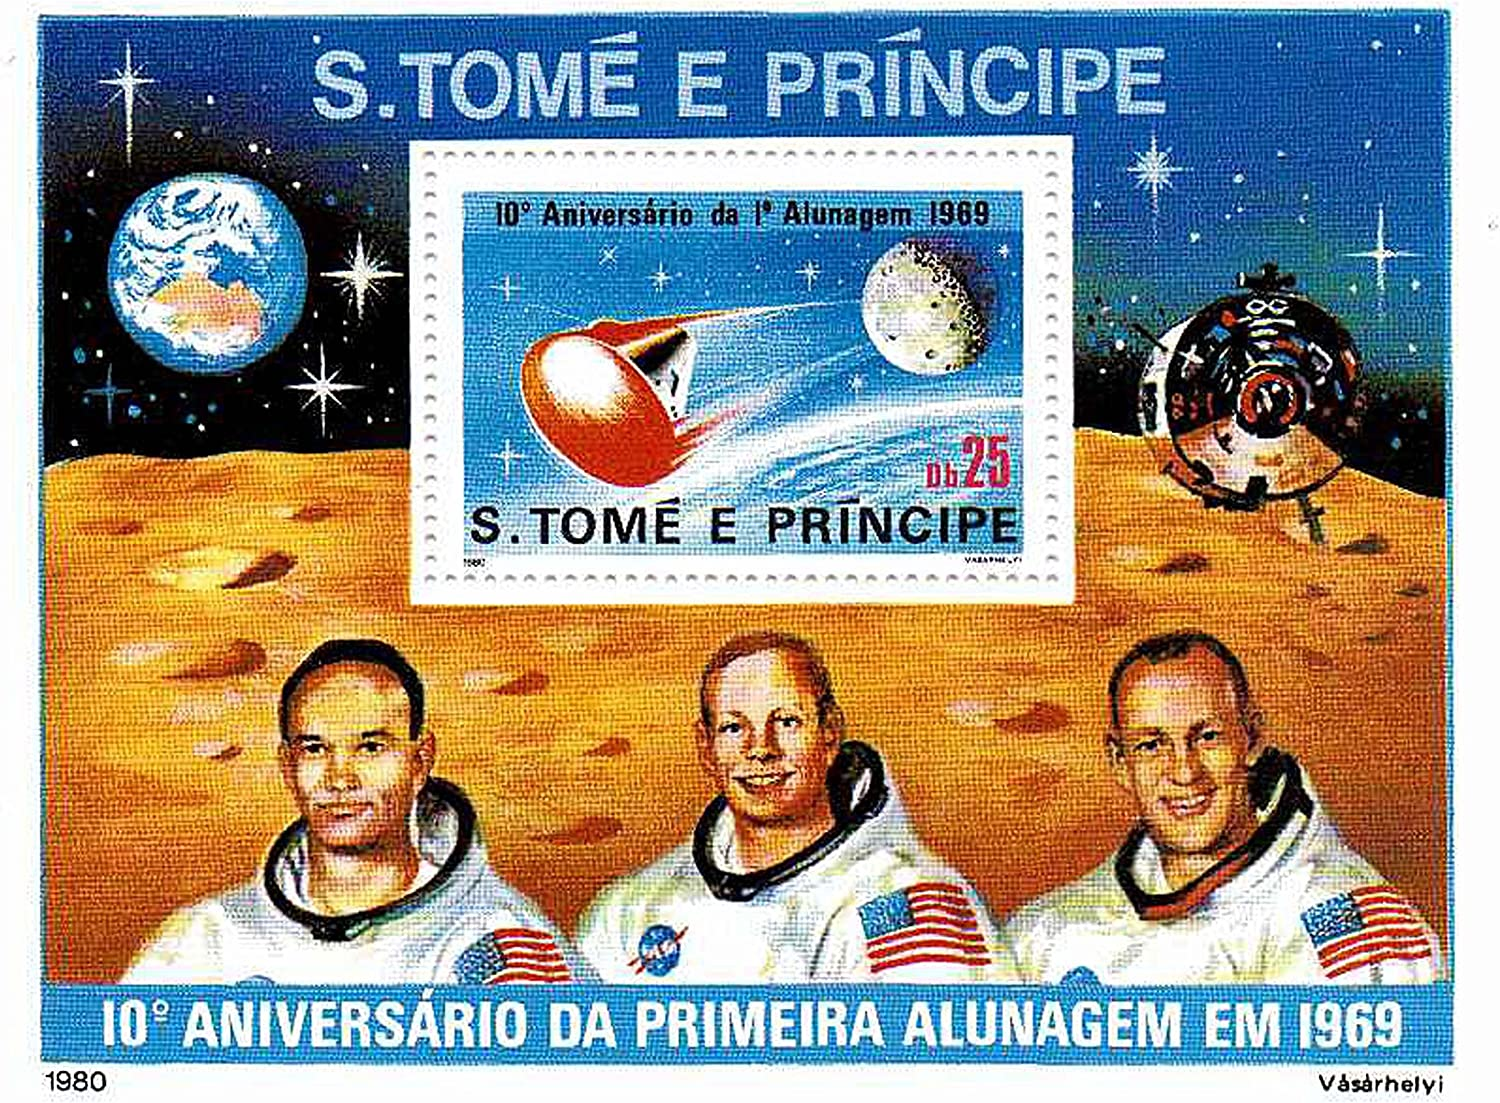 Mint NH Space stamps for collectors Printed 1980-1 Space themed stamp ideal for collecting superb condition 10th Anniversary of the first man on the moon